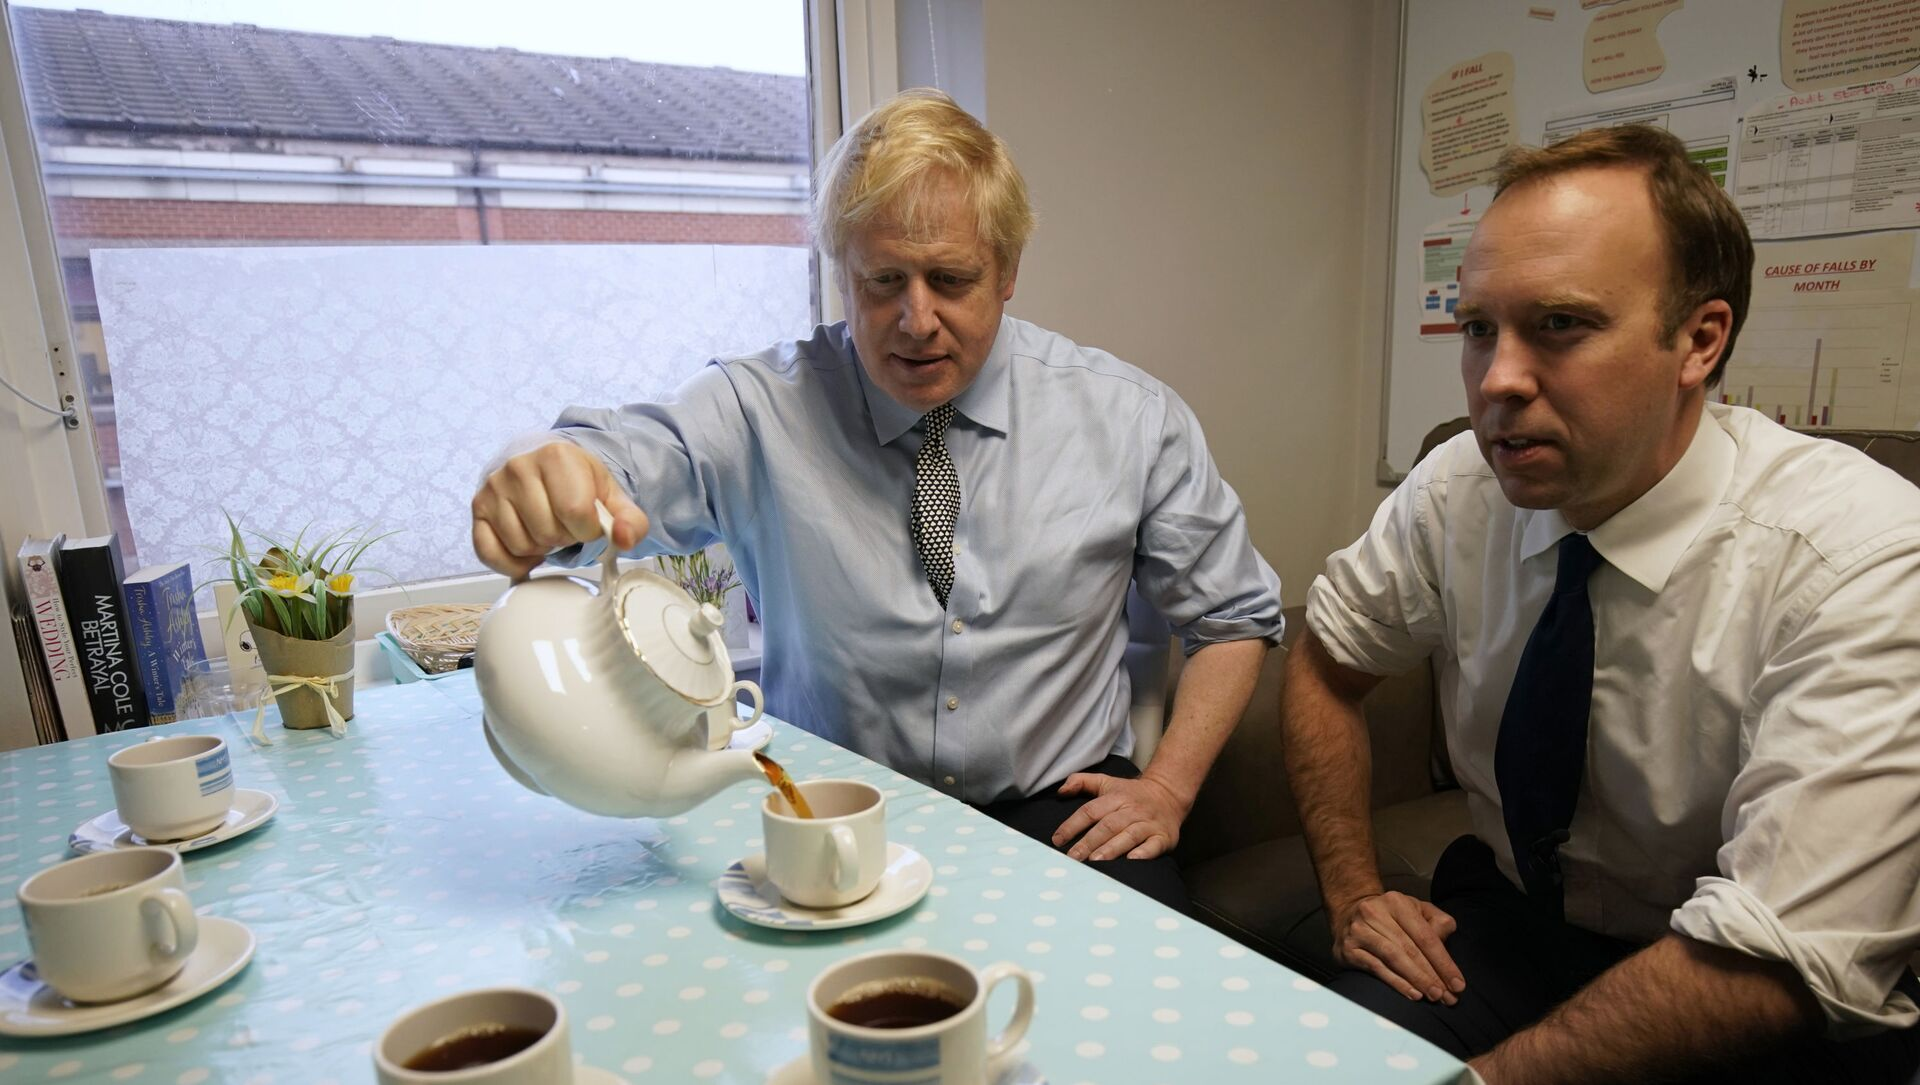 Secretary of State for Health and Social Care Matt Hancock, right, and Prime Minister Boris Johnson have tea with members of staff as they visit Bassetlaw District General Hospital, during their General Election campaign in Worksop, England, Friday, Nov. 22, 2019.  - Sputnik International, 1920, 18.06.2021